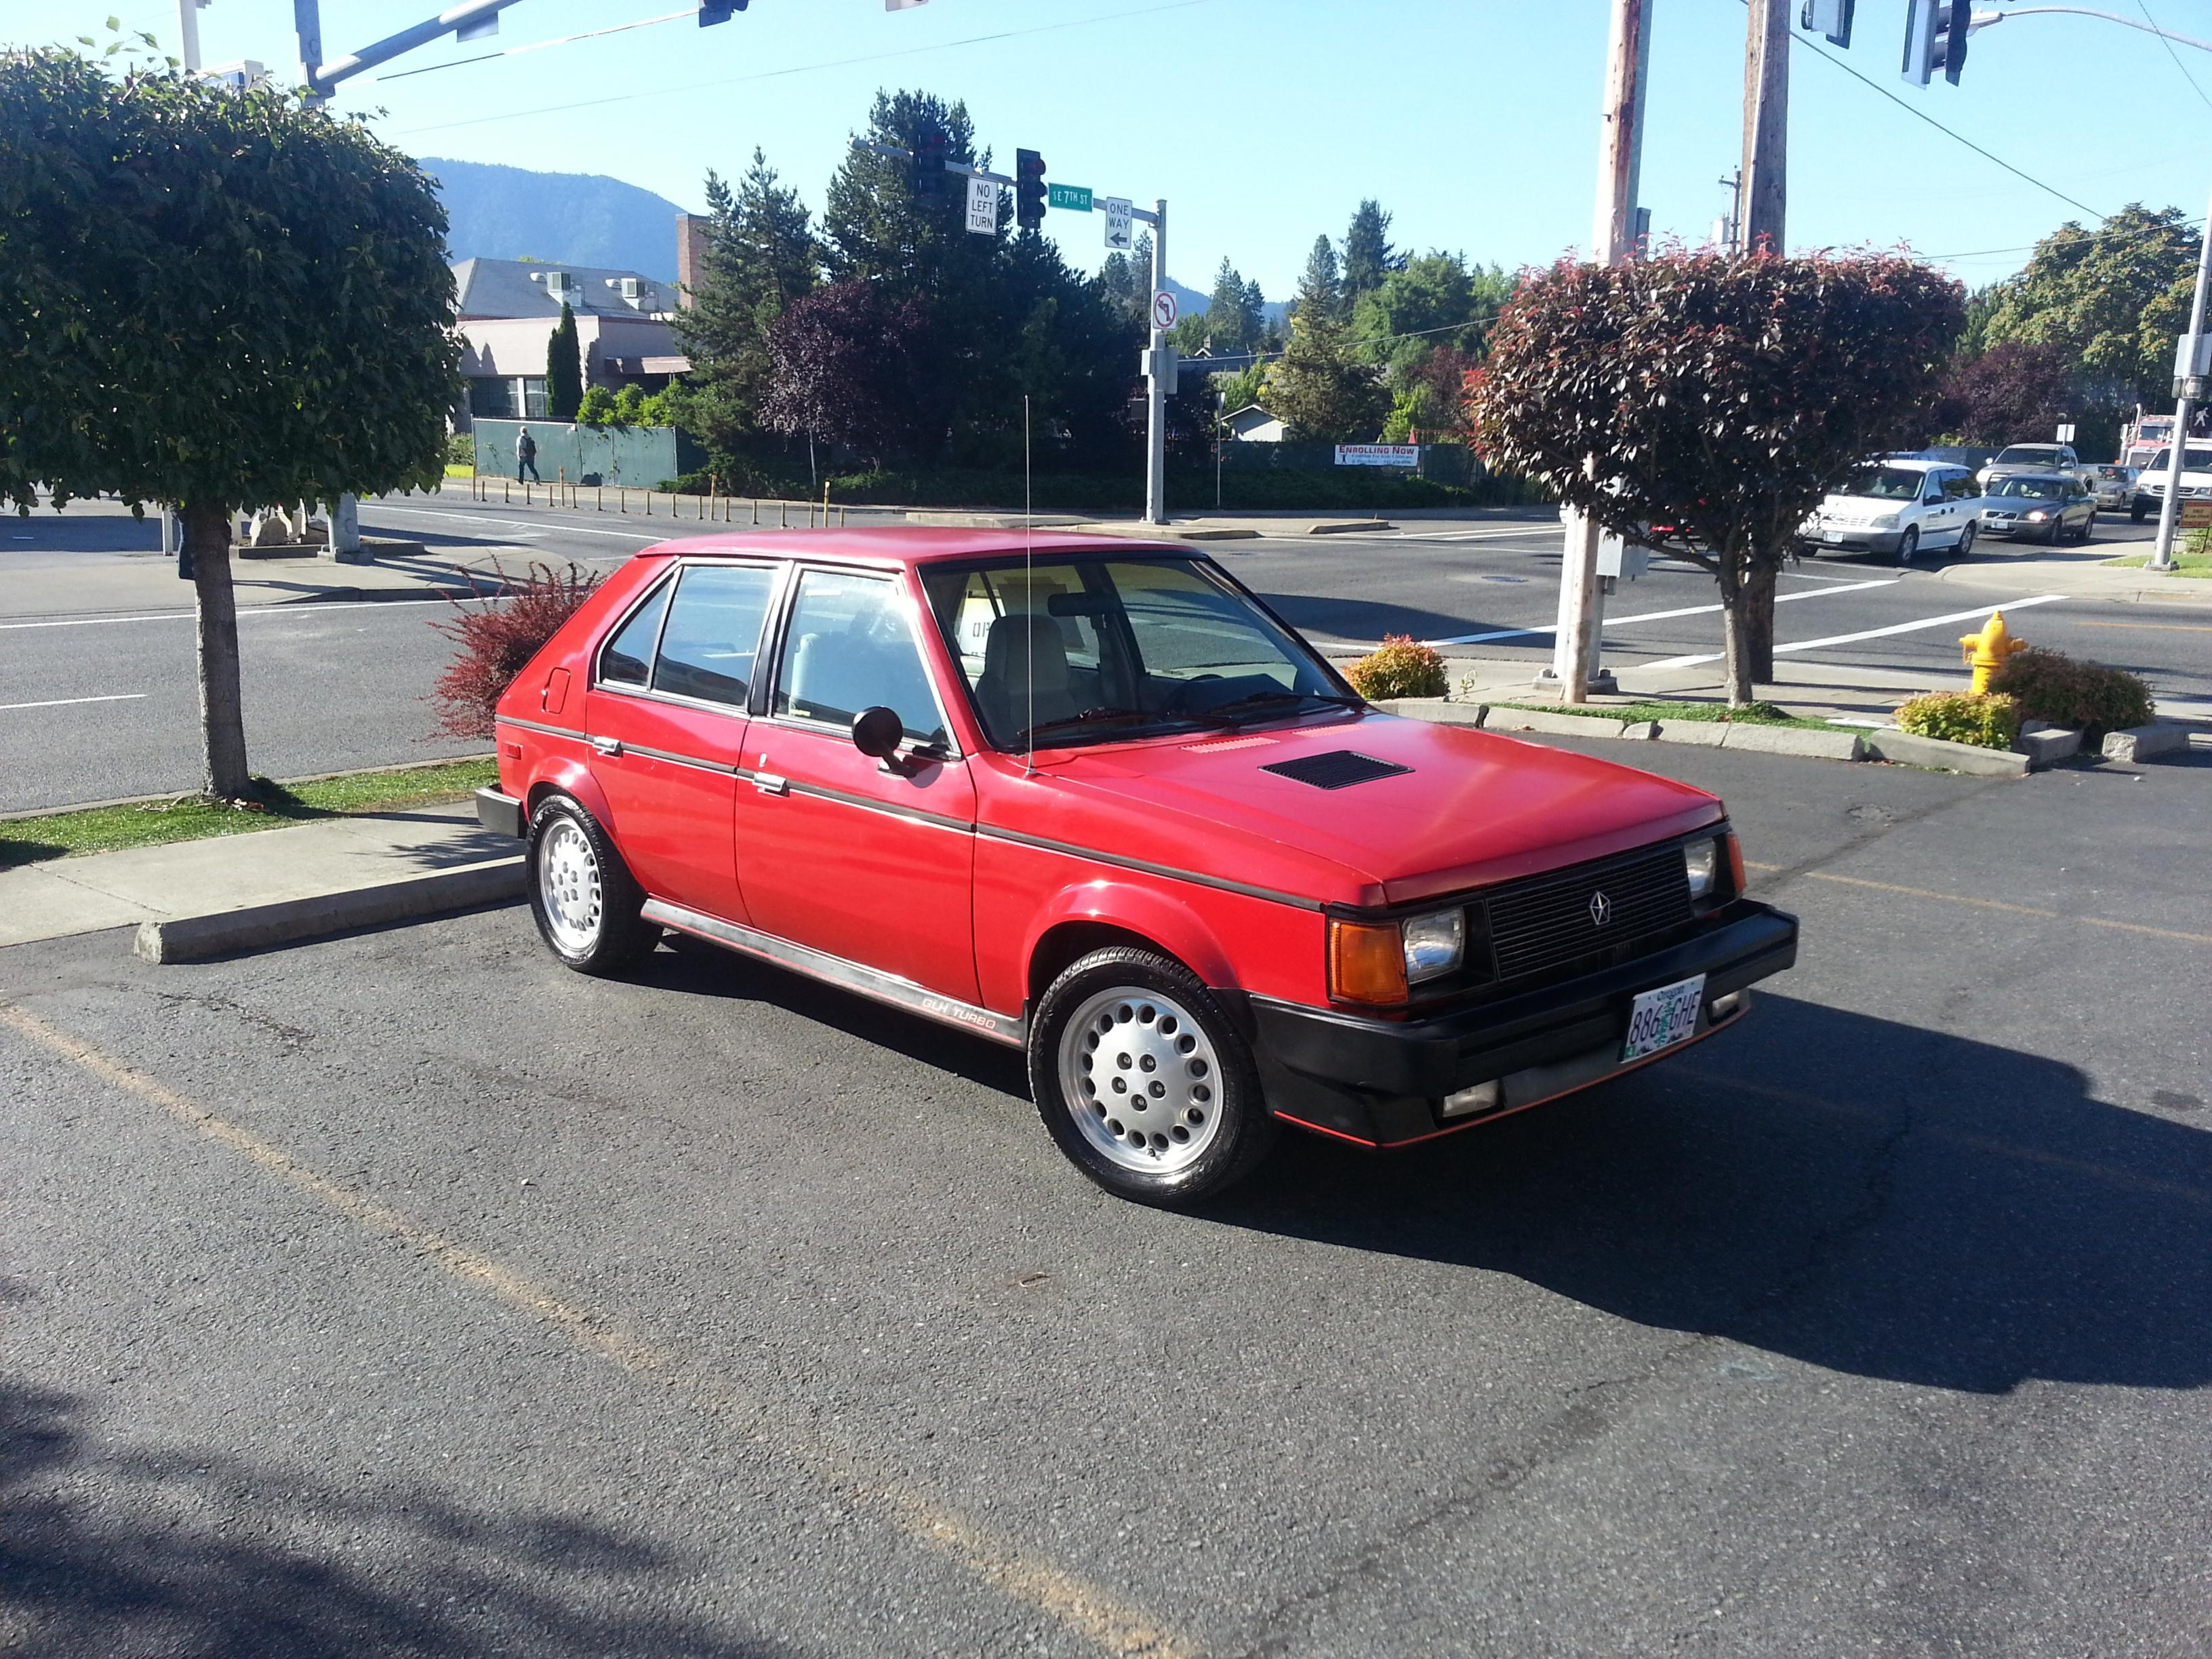 1989 Dodge Omni for Sale 1 - Glh Dodge Omni With Complete T Setup Oregoncalifornia Car - 1989 Dodge Omni for Sale 1